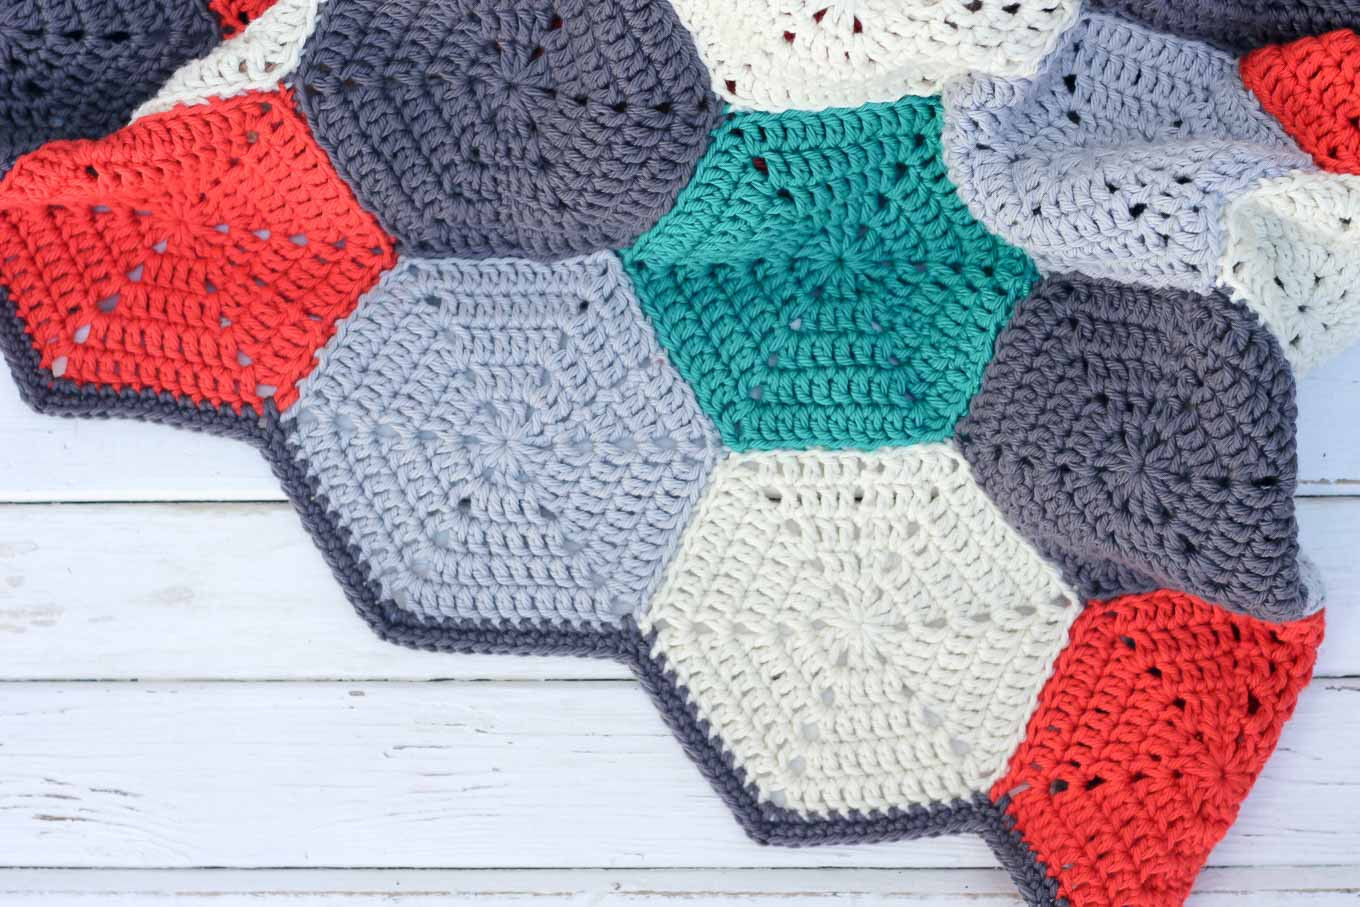 Crochet Afghan Patterns with Pictures Best Of How to Join Crochet Hexagons Granny Squares Other Of Gorgeous 43 Photos Crochet Afghan Patterns with Pictures